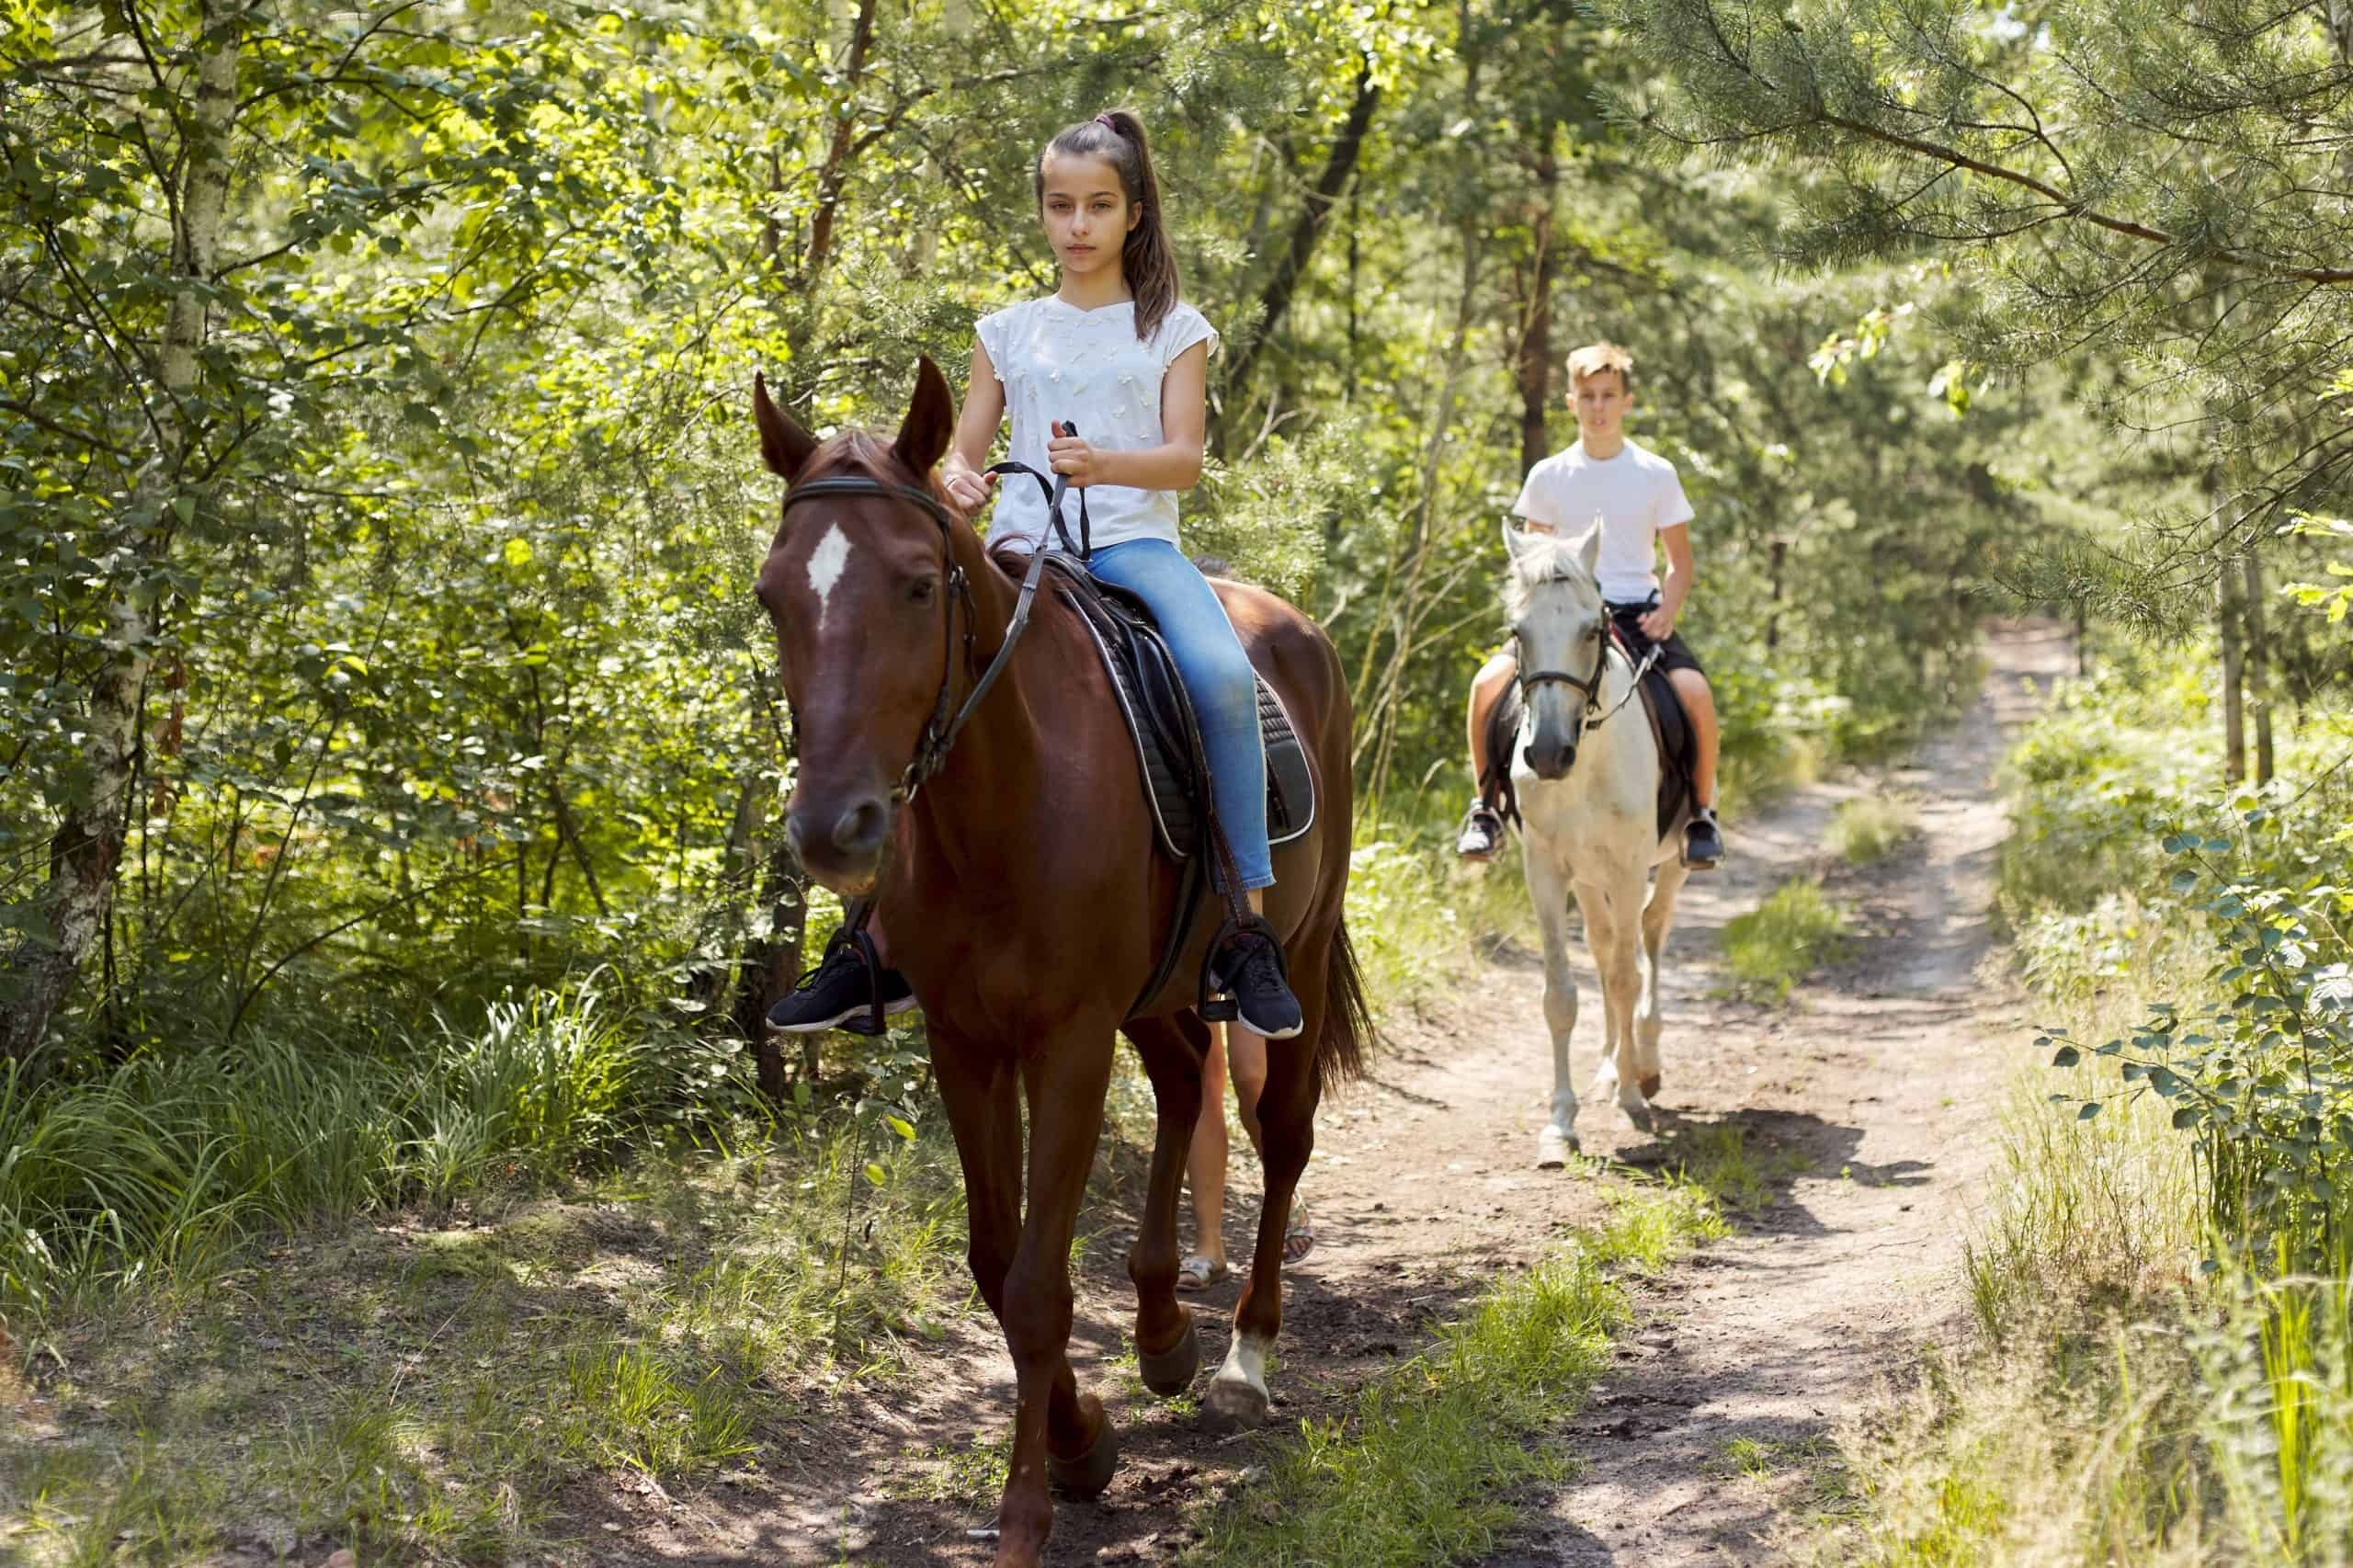 Group of teenagers on horseback riding in summer park.